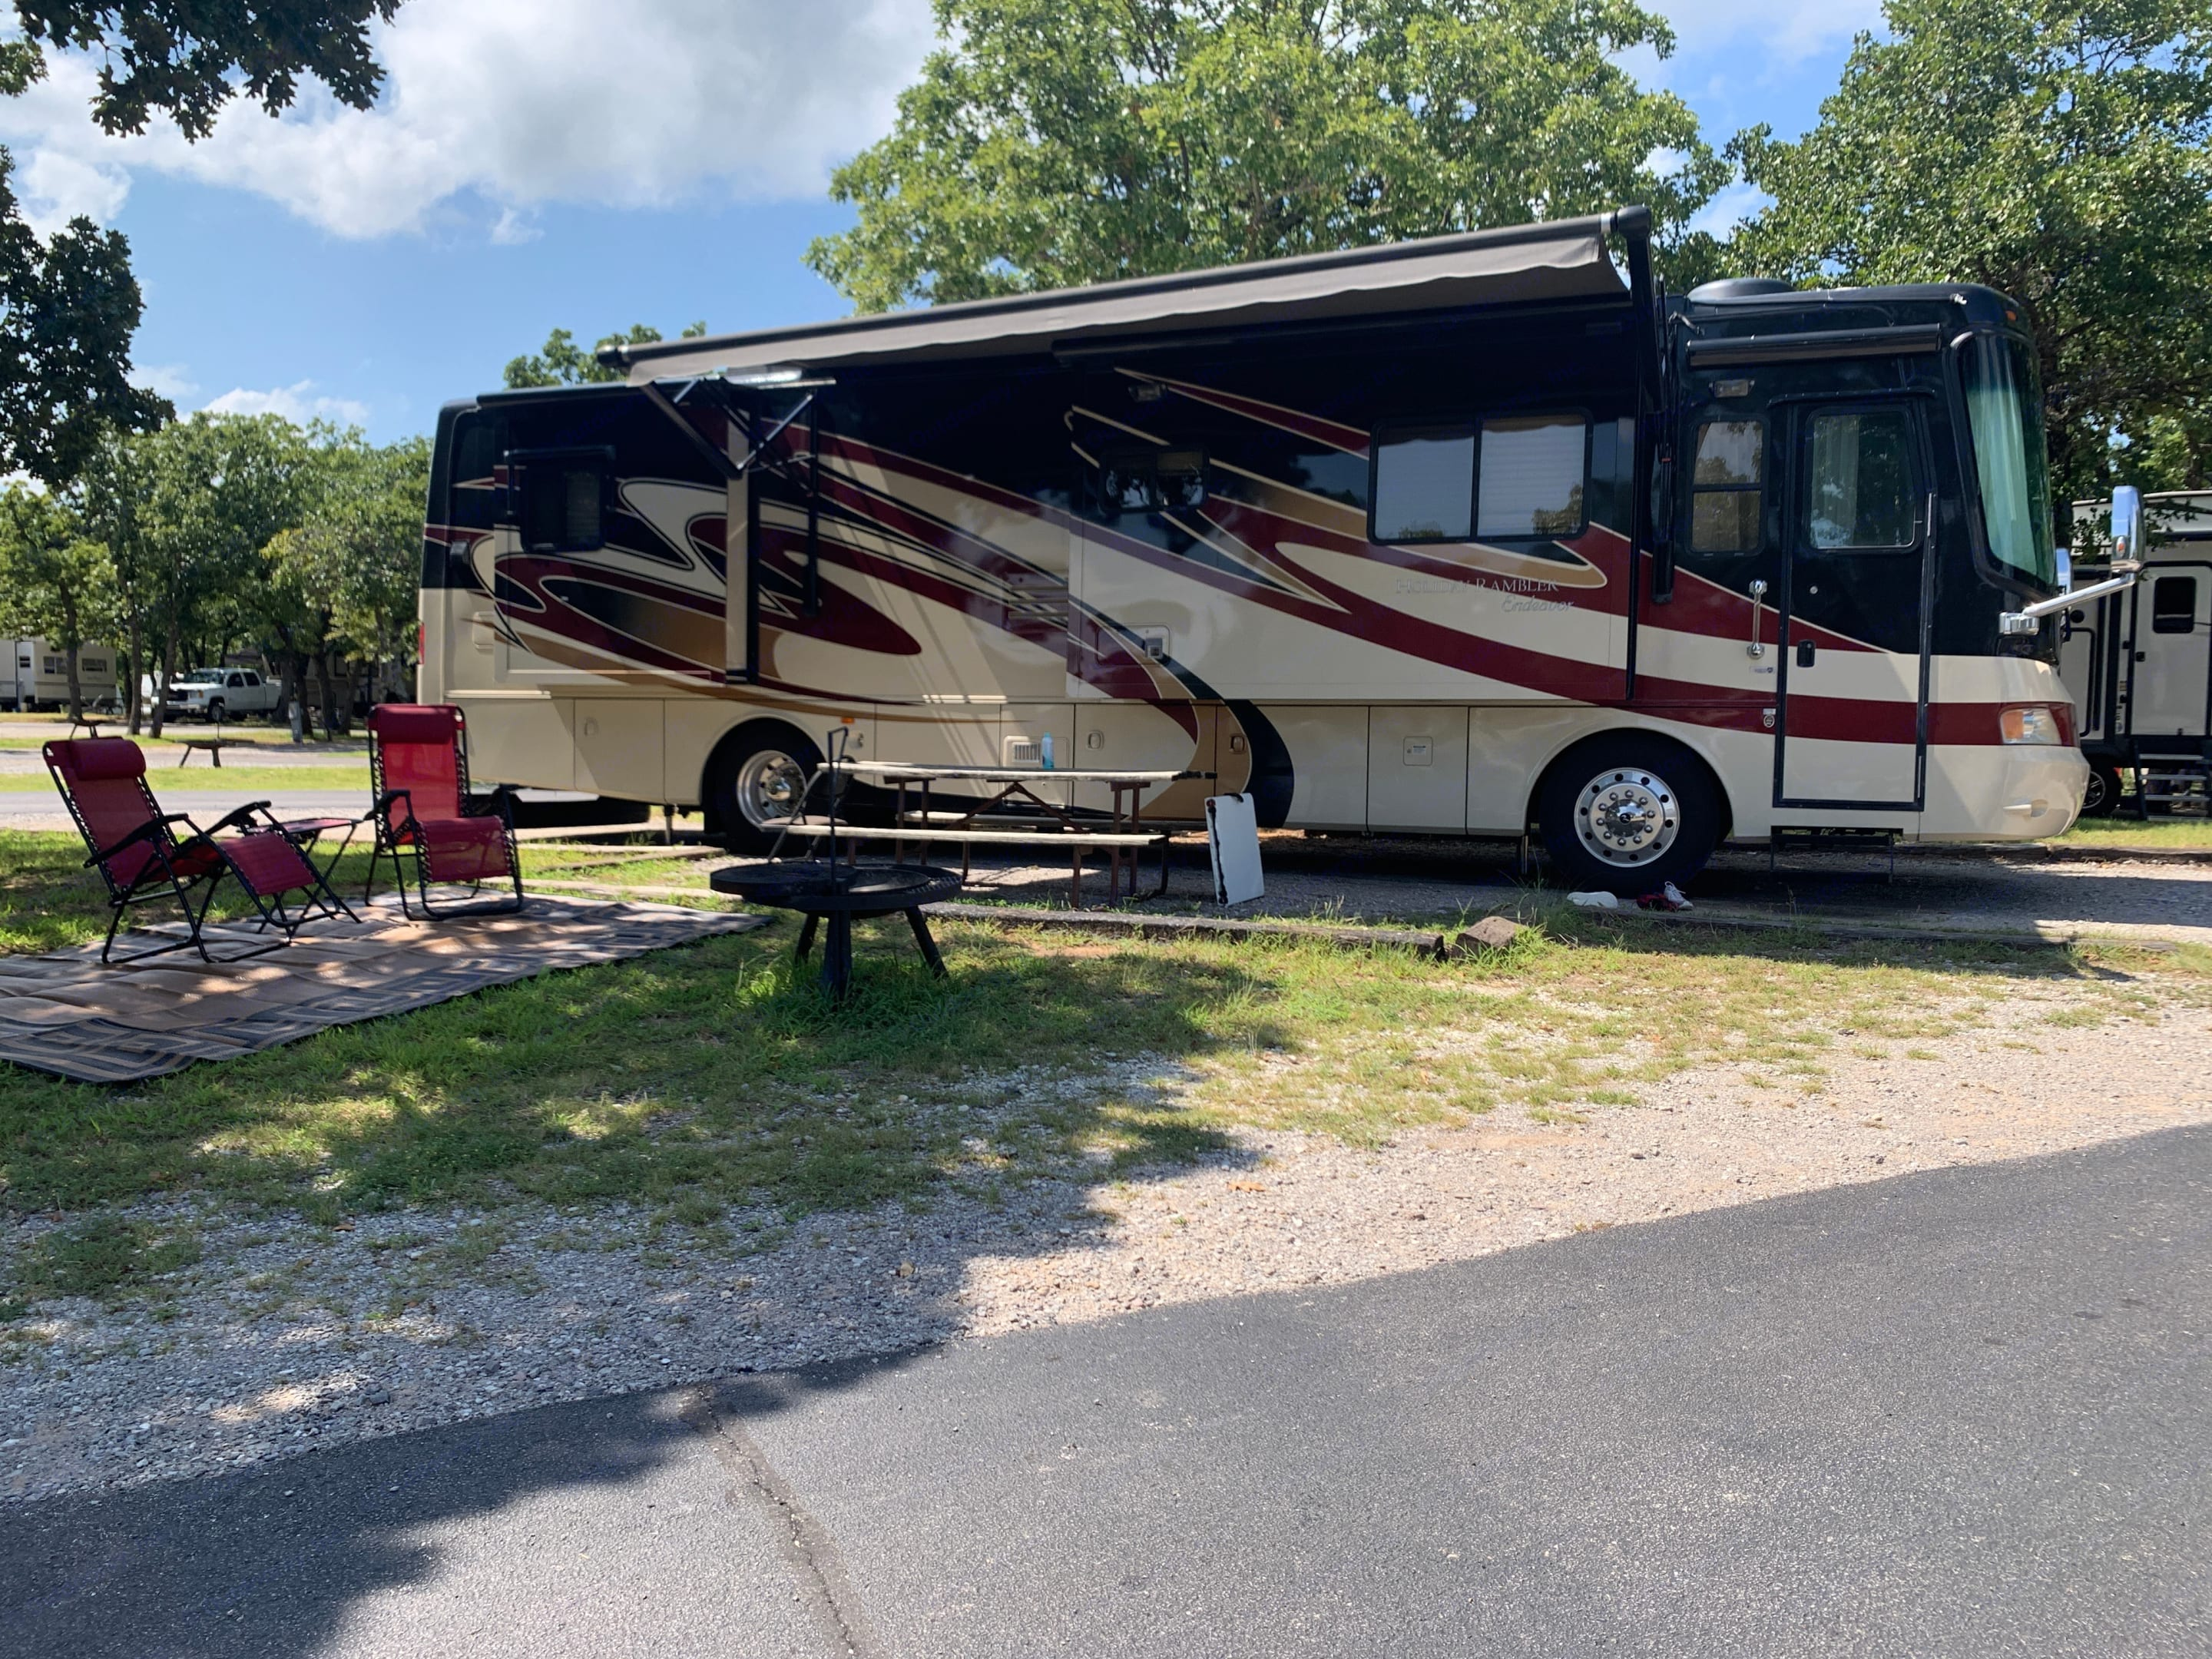 Comes with four outdoor chairs, lawn rug, 10x10 canopy, folding table and Blackstone grill. Holiday Rambler Endeavor 2009